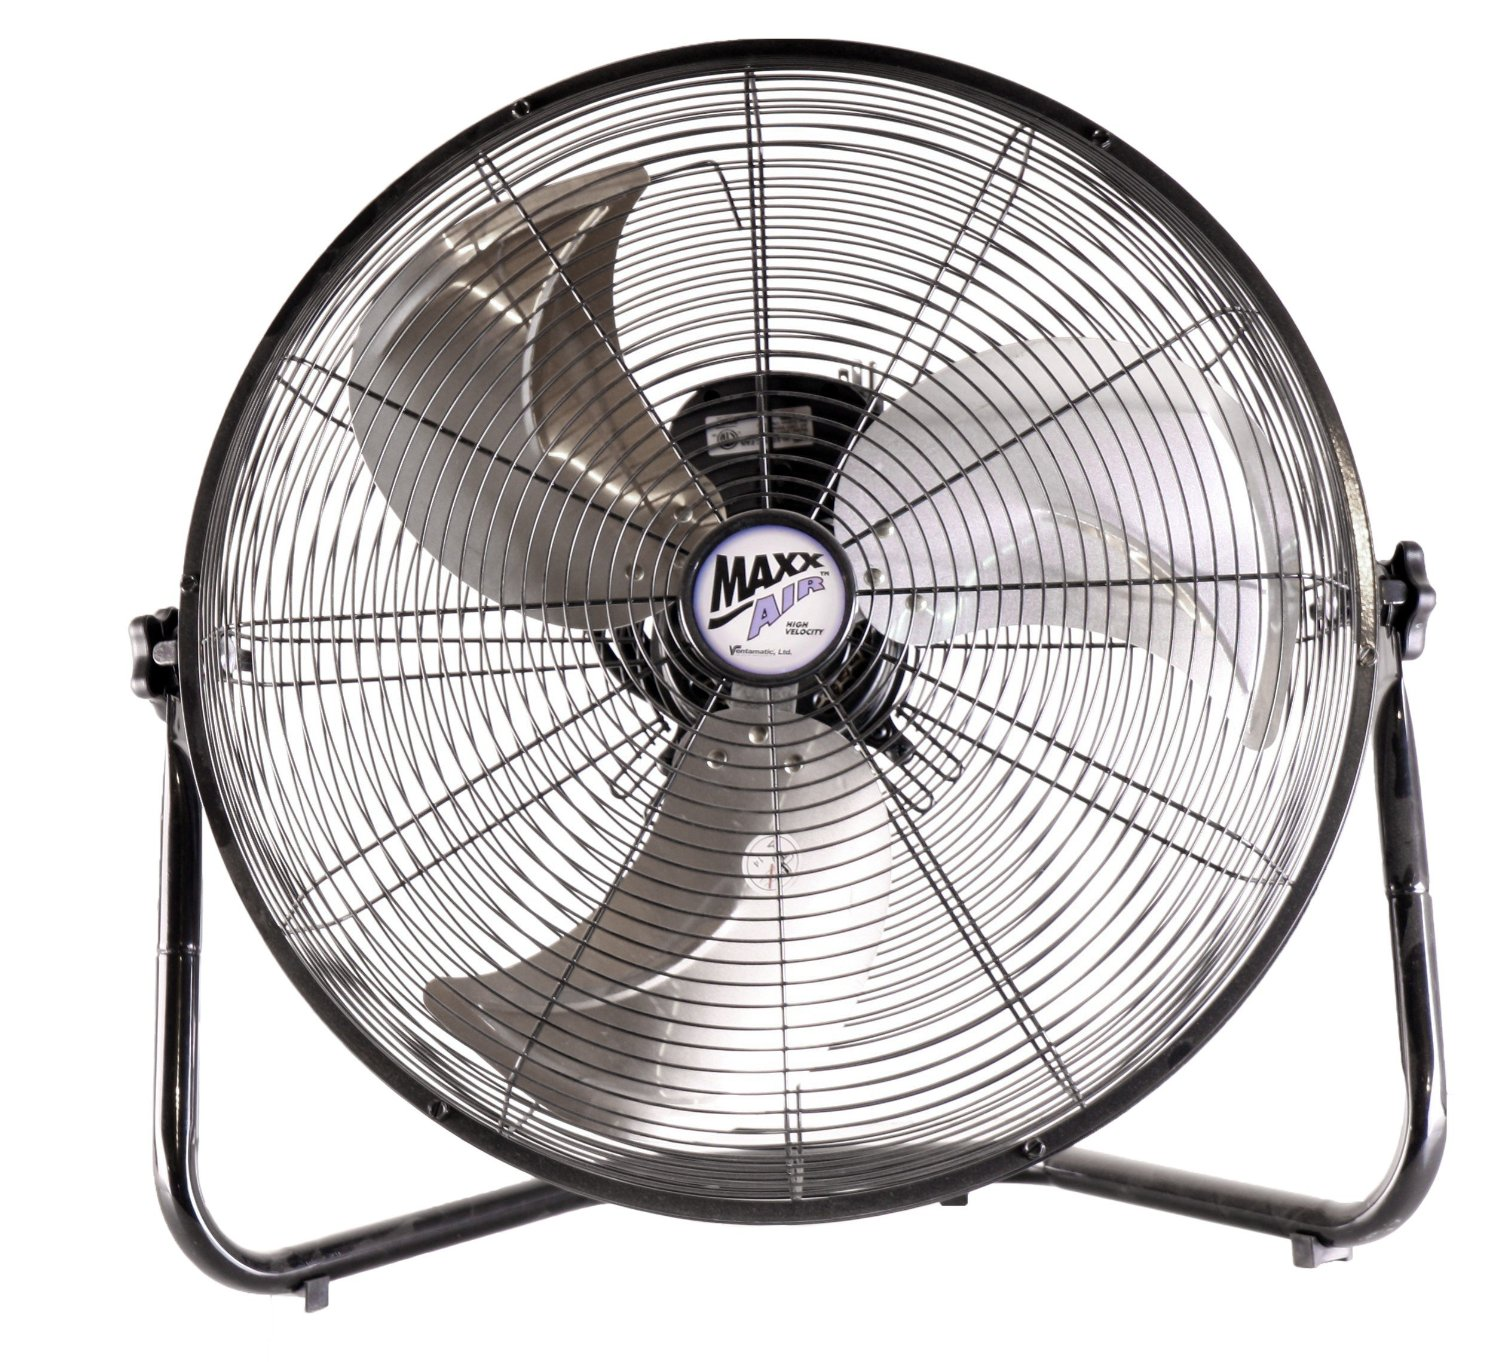 If you want to be able to perform at your best, able to generate the same power indoors as you can outdoors without your Heart Rate and Perceived Exertion going through the roof... you're gonna need a bigger fan.